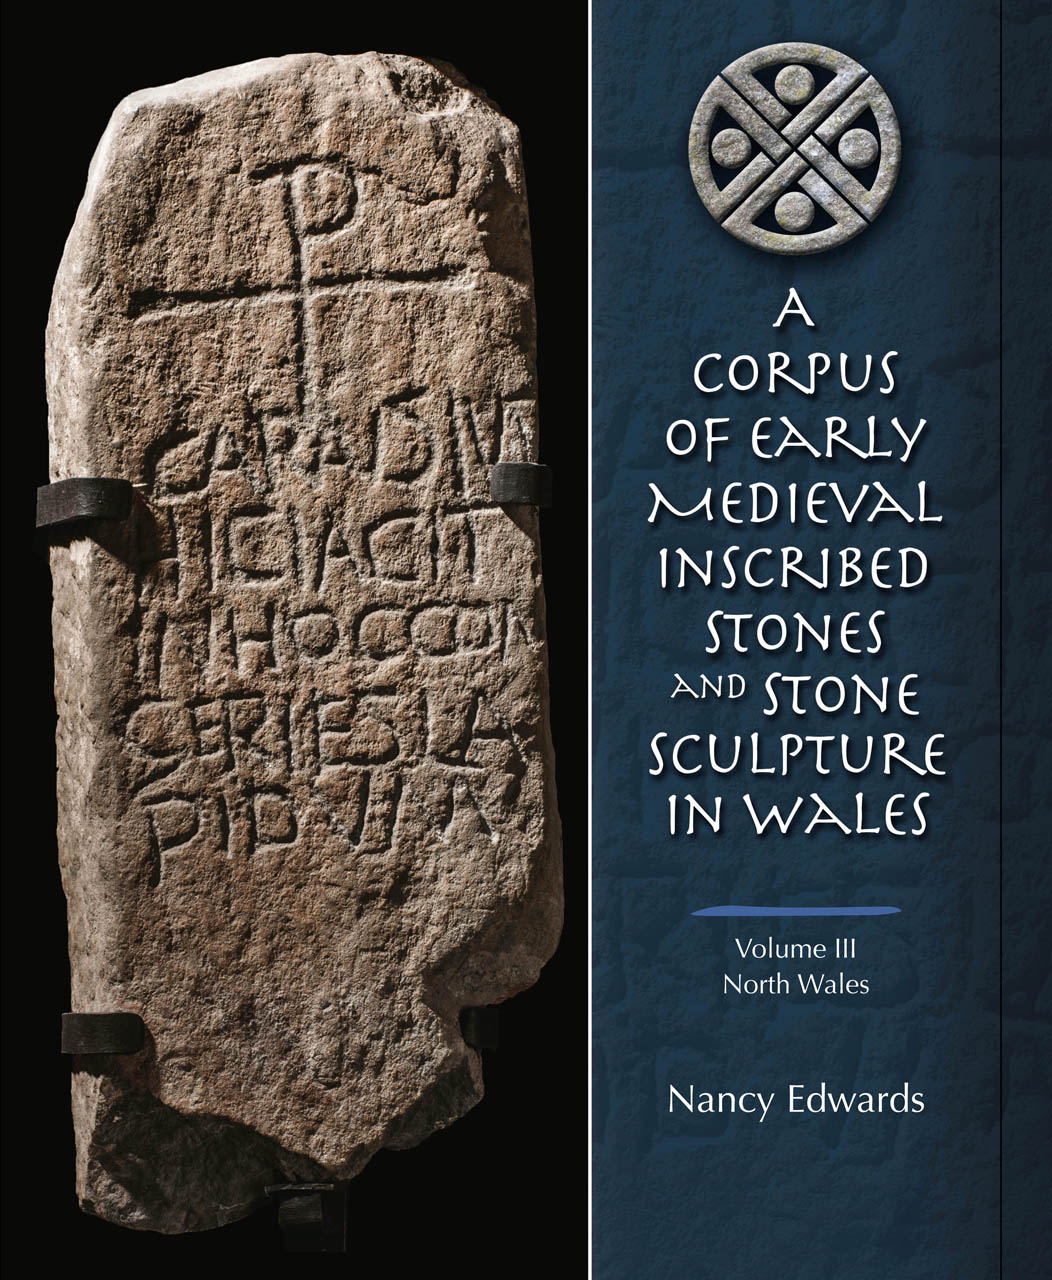 A Corpus of Early Medieval Inscribed Stones and Stone Sculptures in Wales